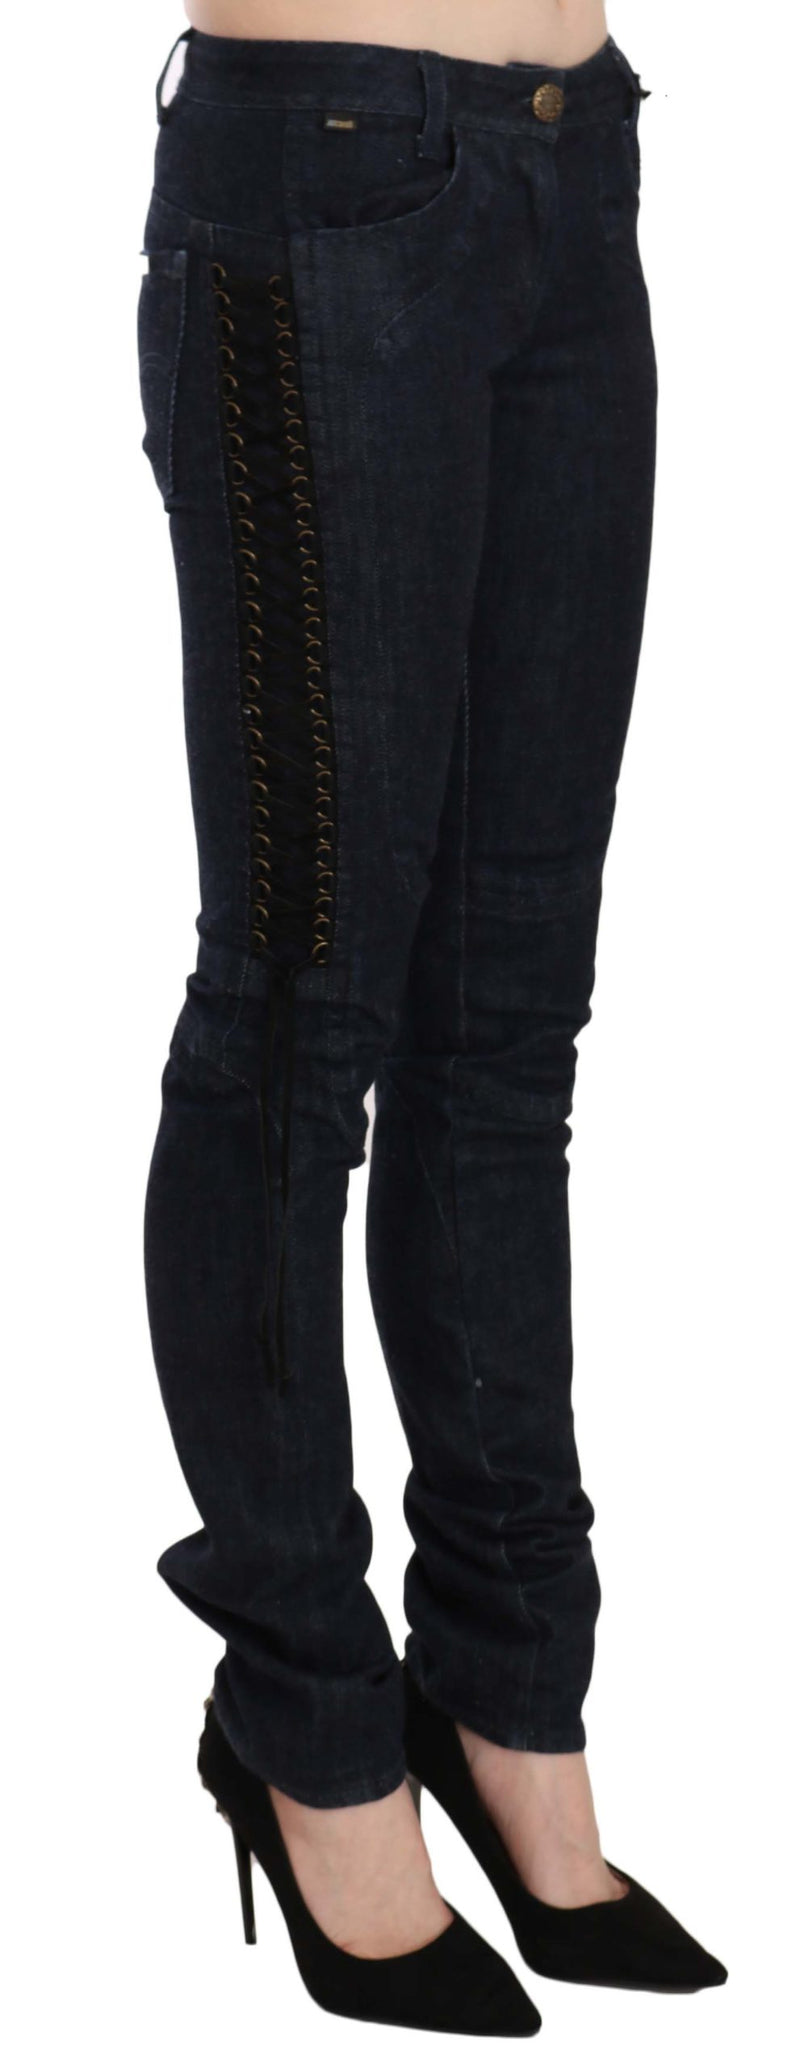 Black Low Waist Skinny Trousers Braided String Pants